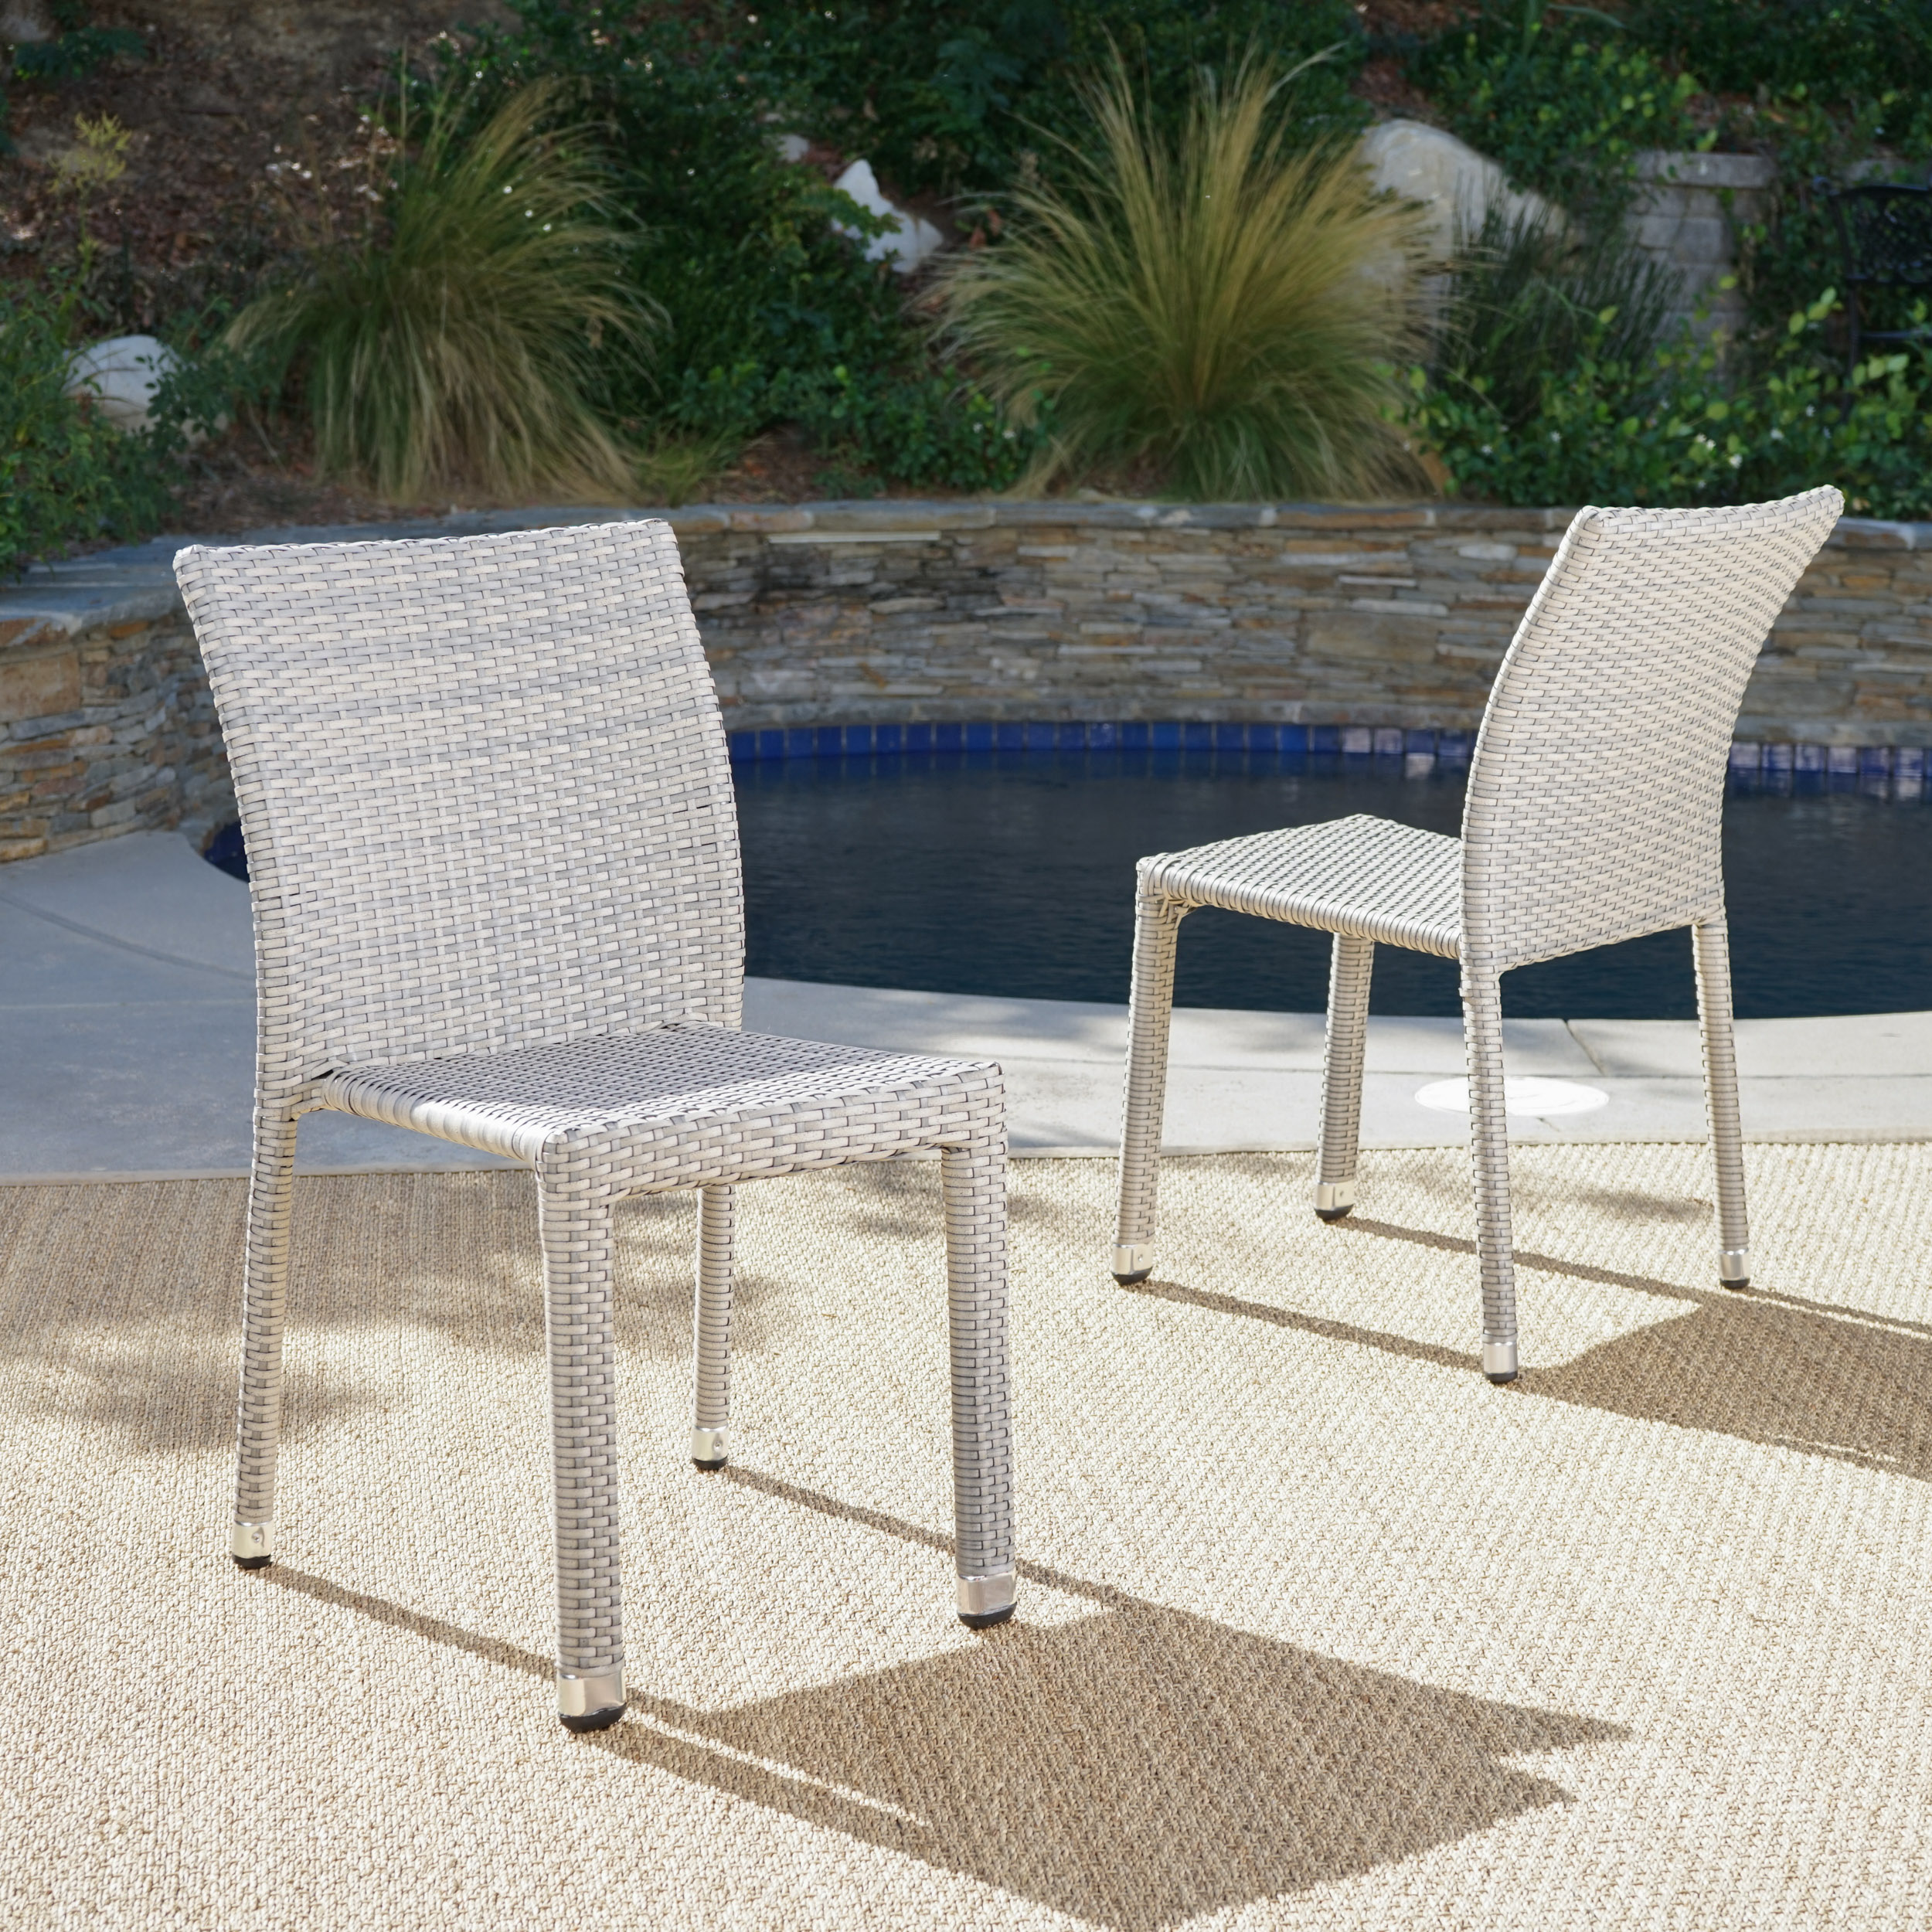 Dorside Outdoor Wicker Armless Stacking Chairs with Aluminum Frame, Set of 2, Chateau Grey